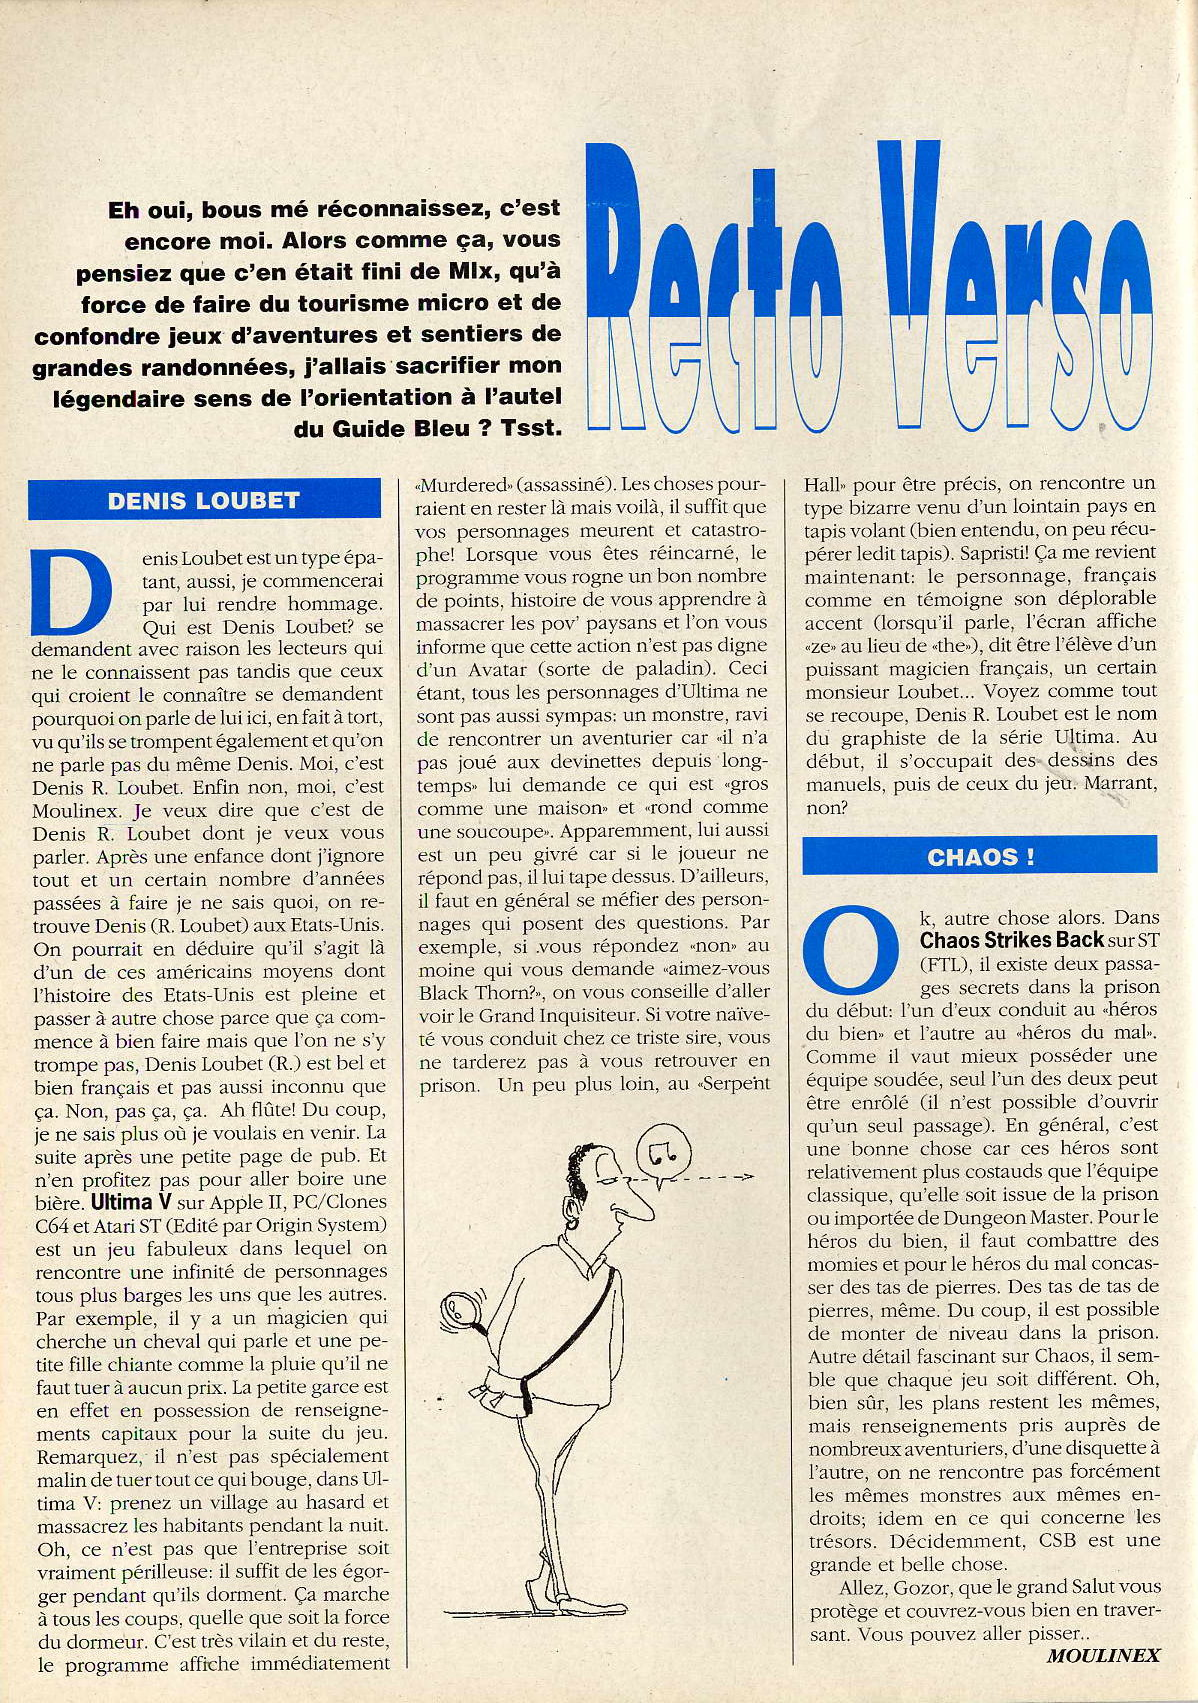 Chaos Strikes Back Hints published in French magazine 'Joystick', Issue #4 April 1990, Page 74